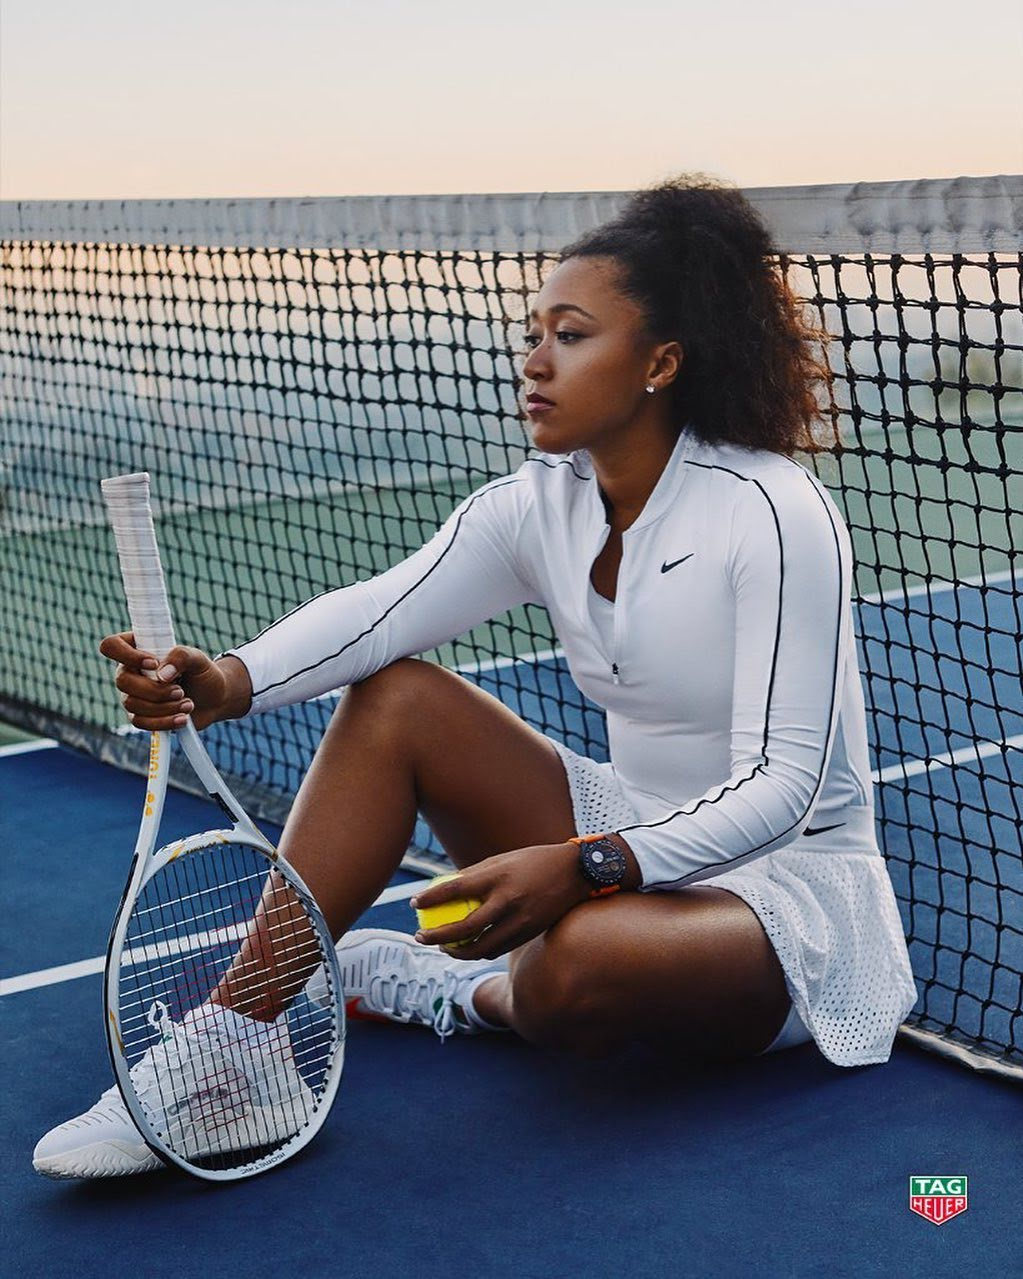 Tennis Player Naomi Osaka Has Always Been A Certified BTS ARMY, And Here's The Undeniable Proof